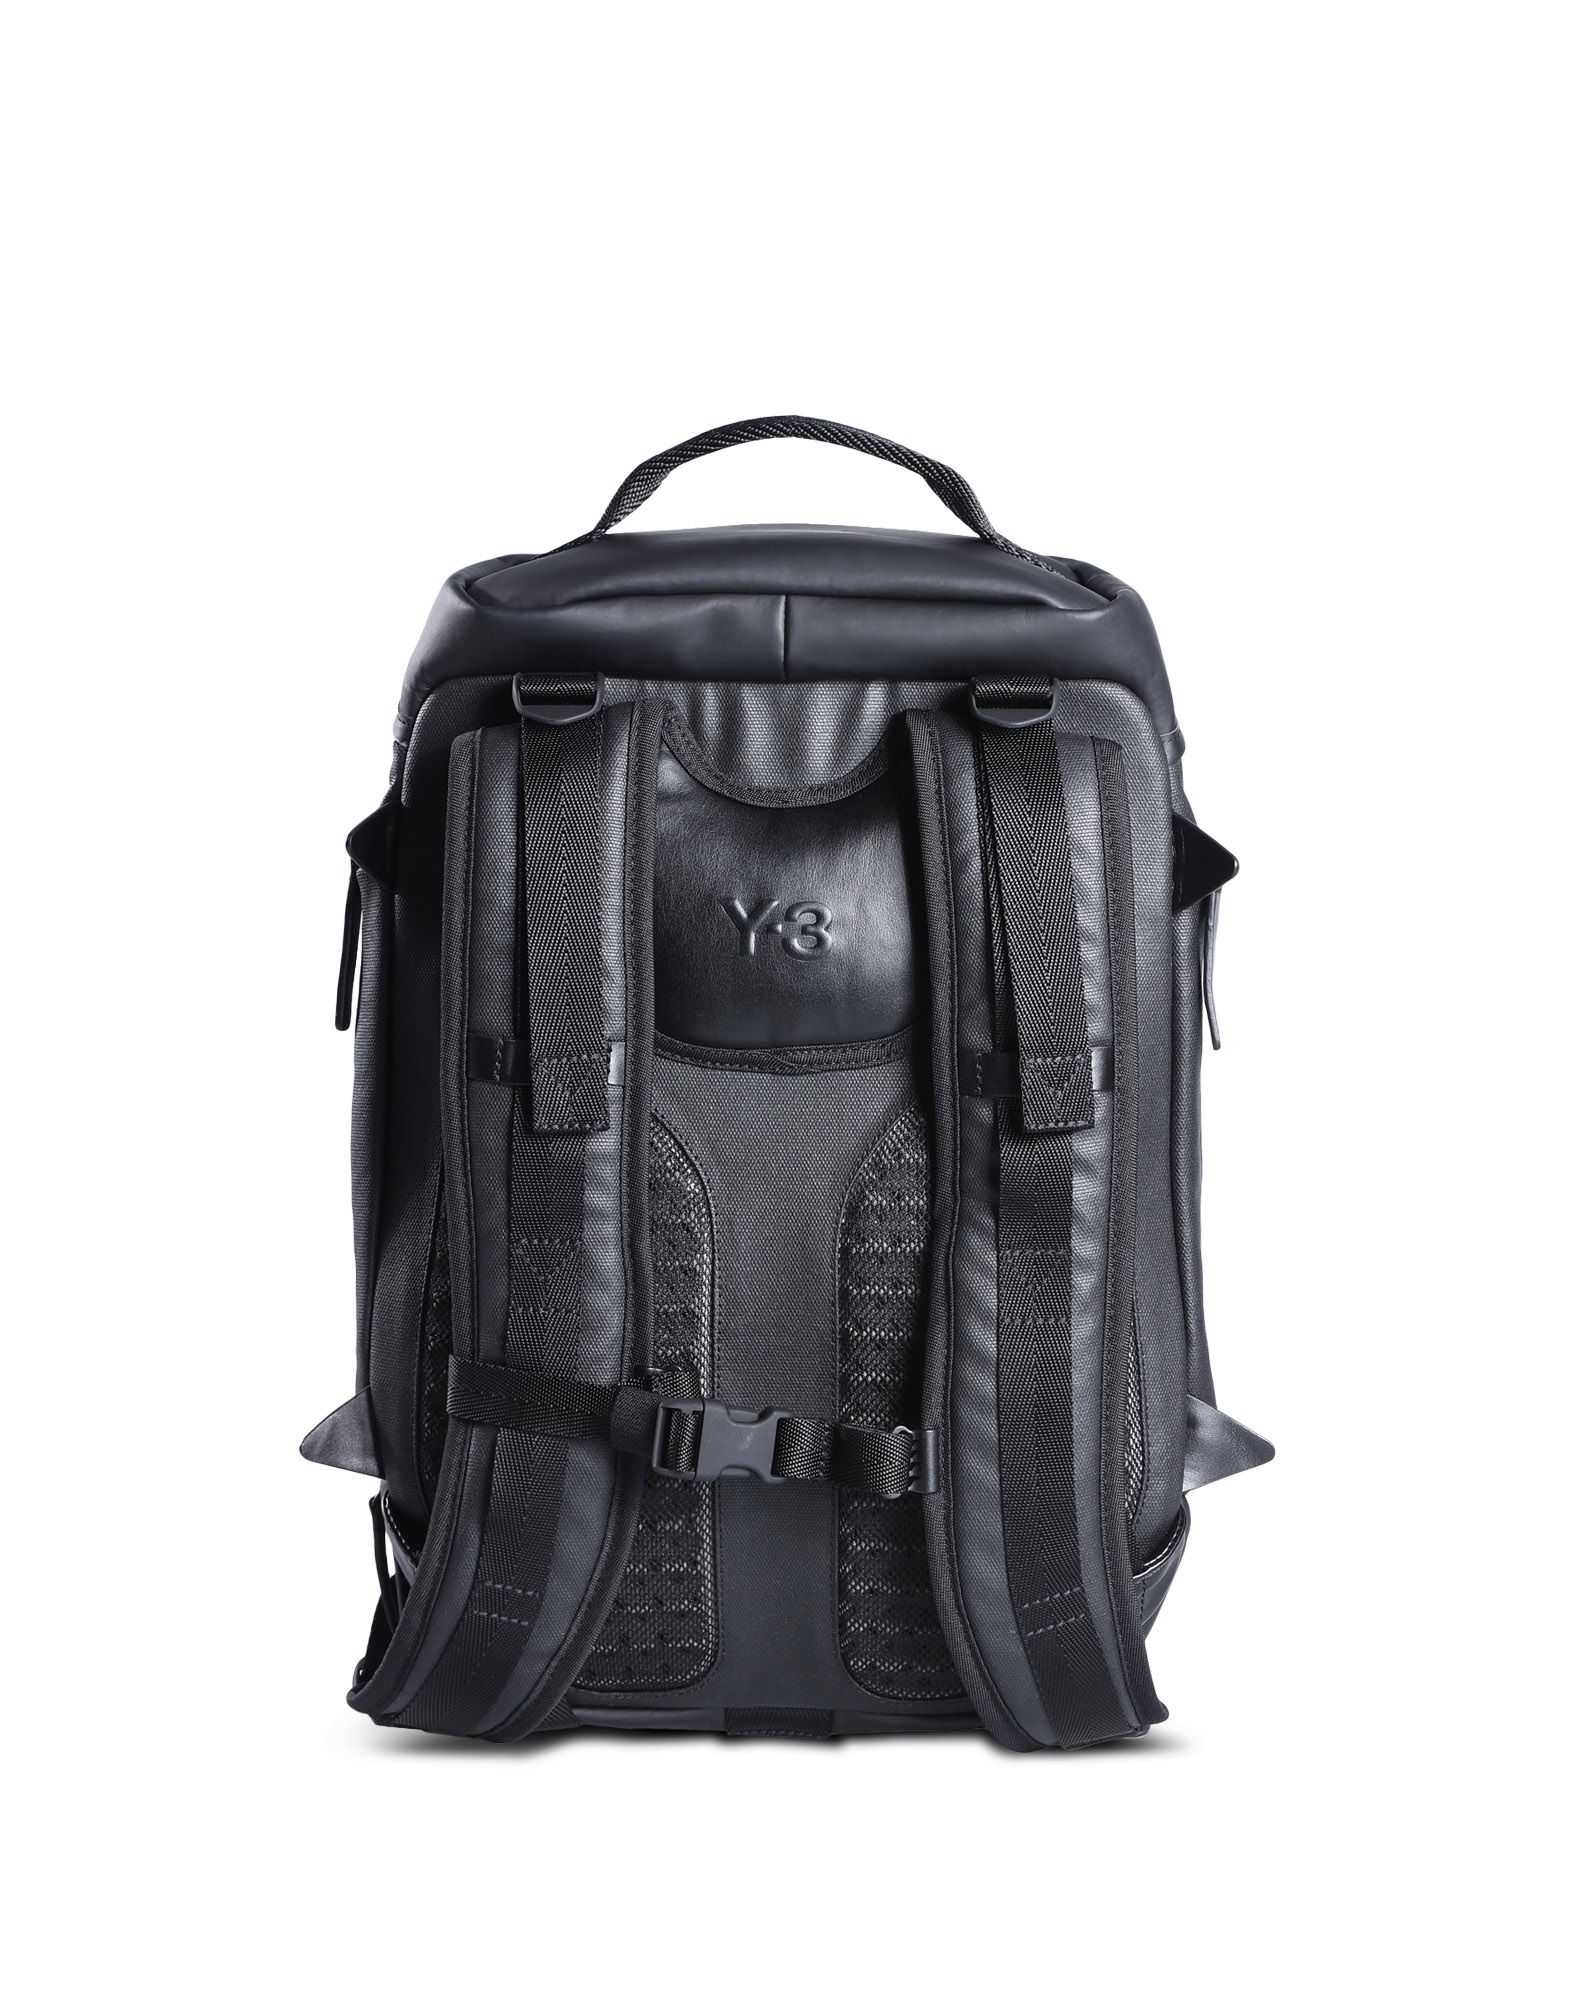 ... Y-3 Y-3 ICON BACKPACK SMALL Backpack E e ... 44768ec678d6a